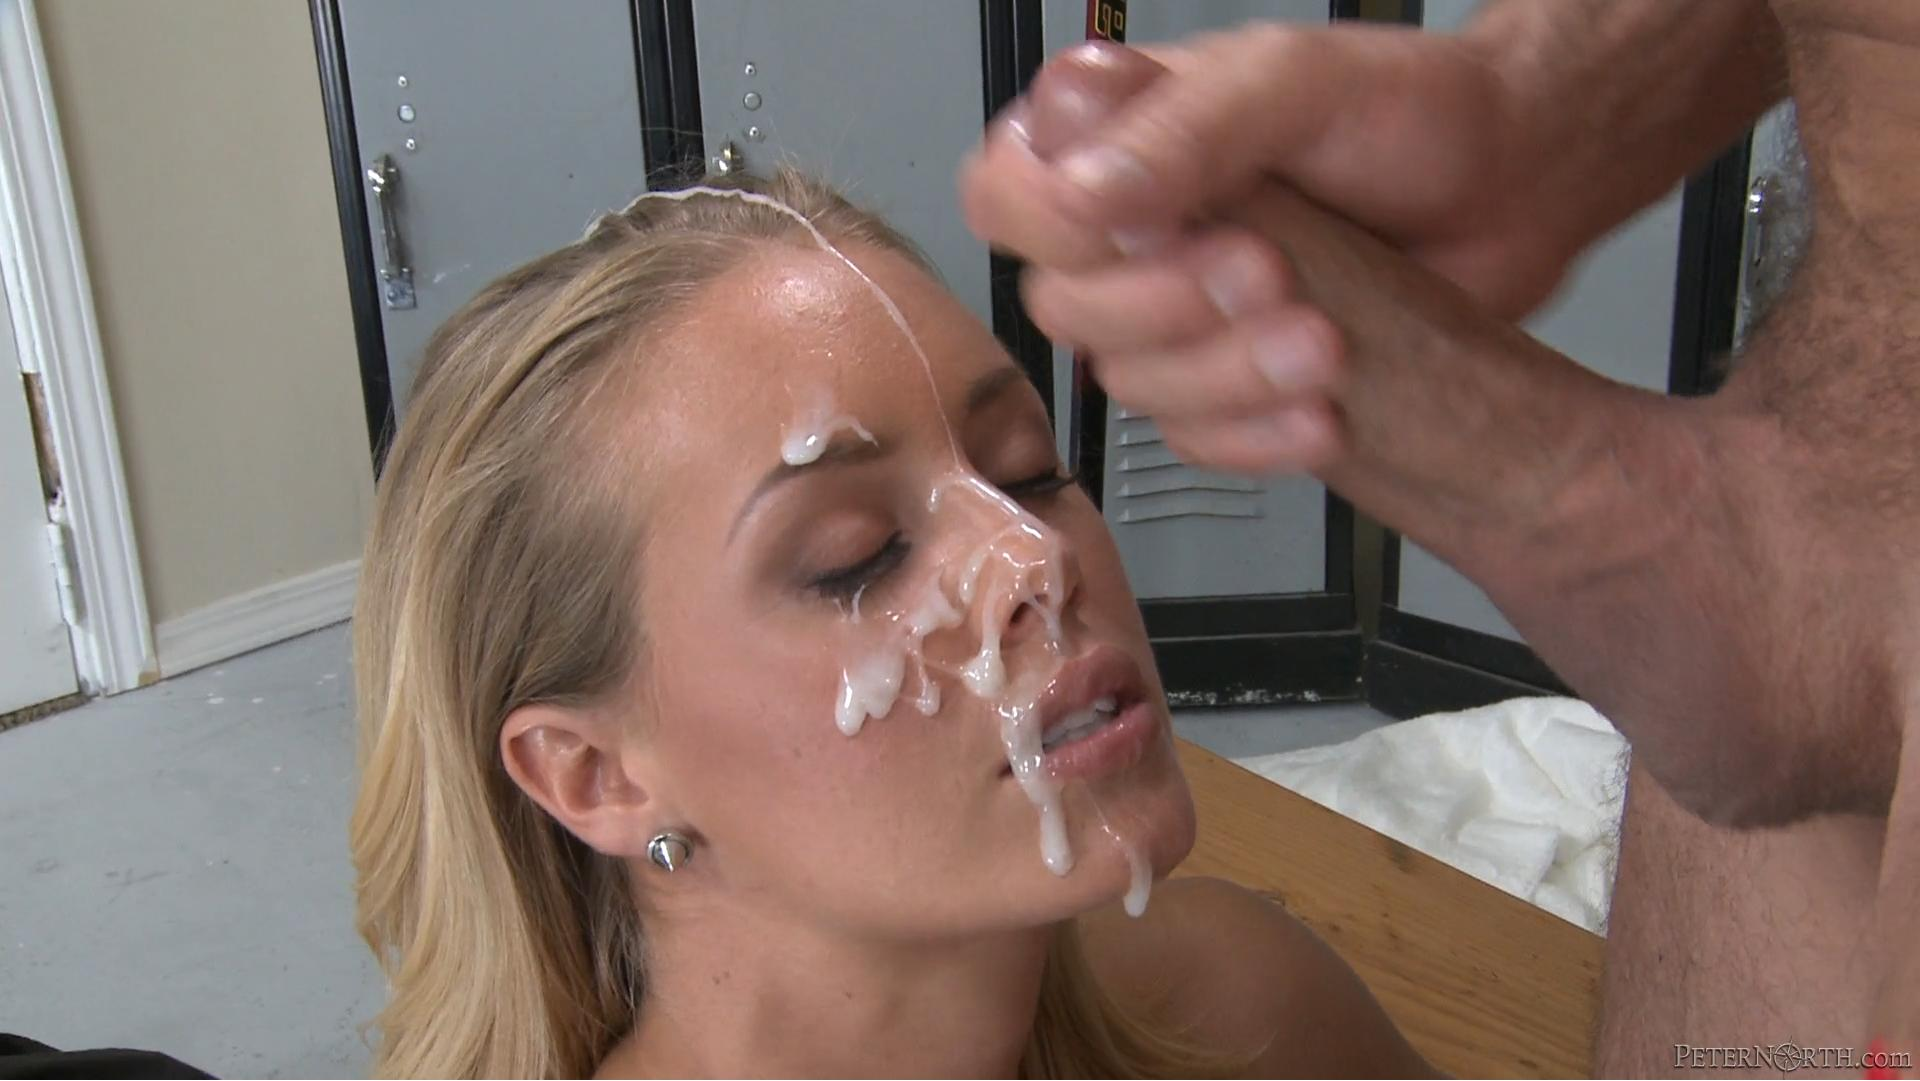 Creampie Asian Teen Uncensored